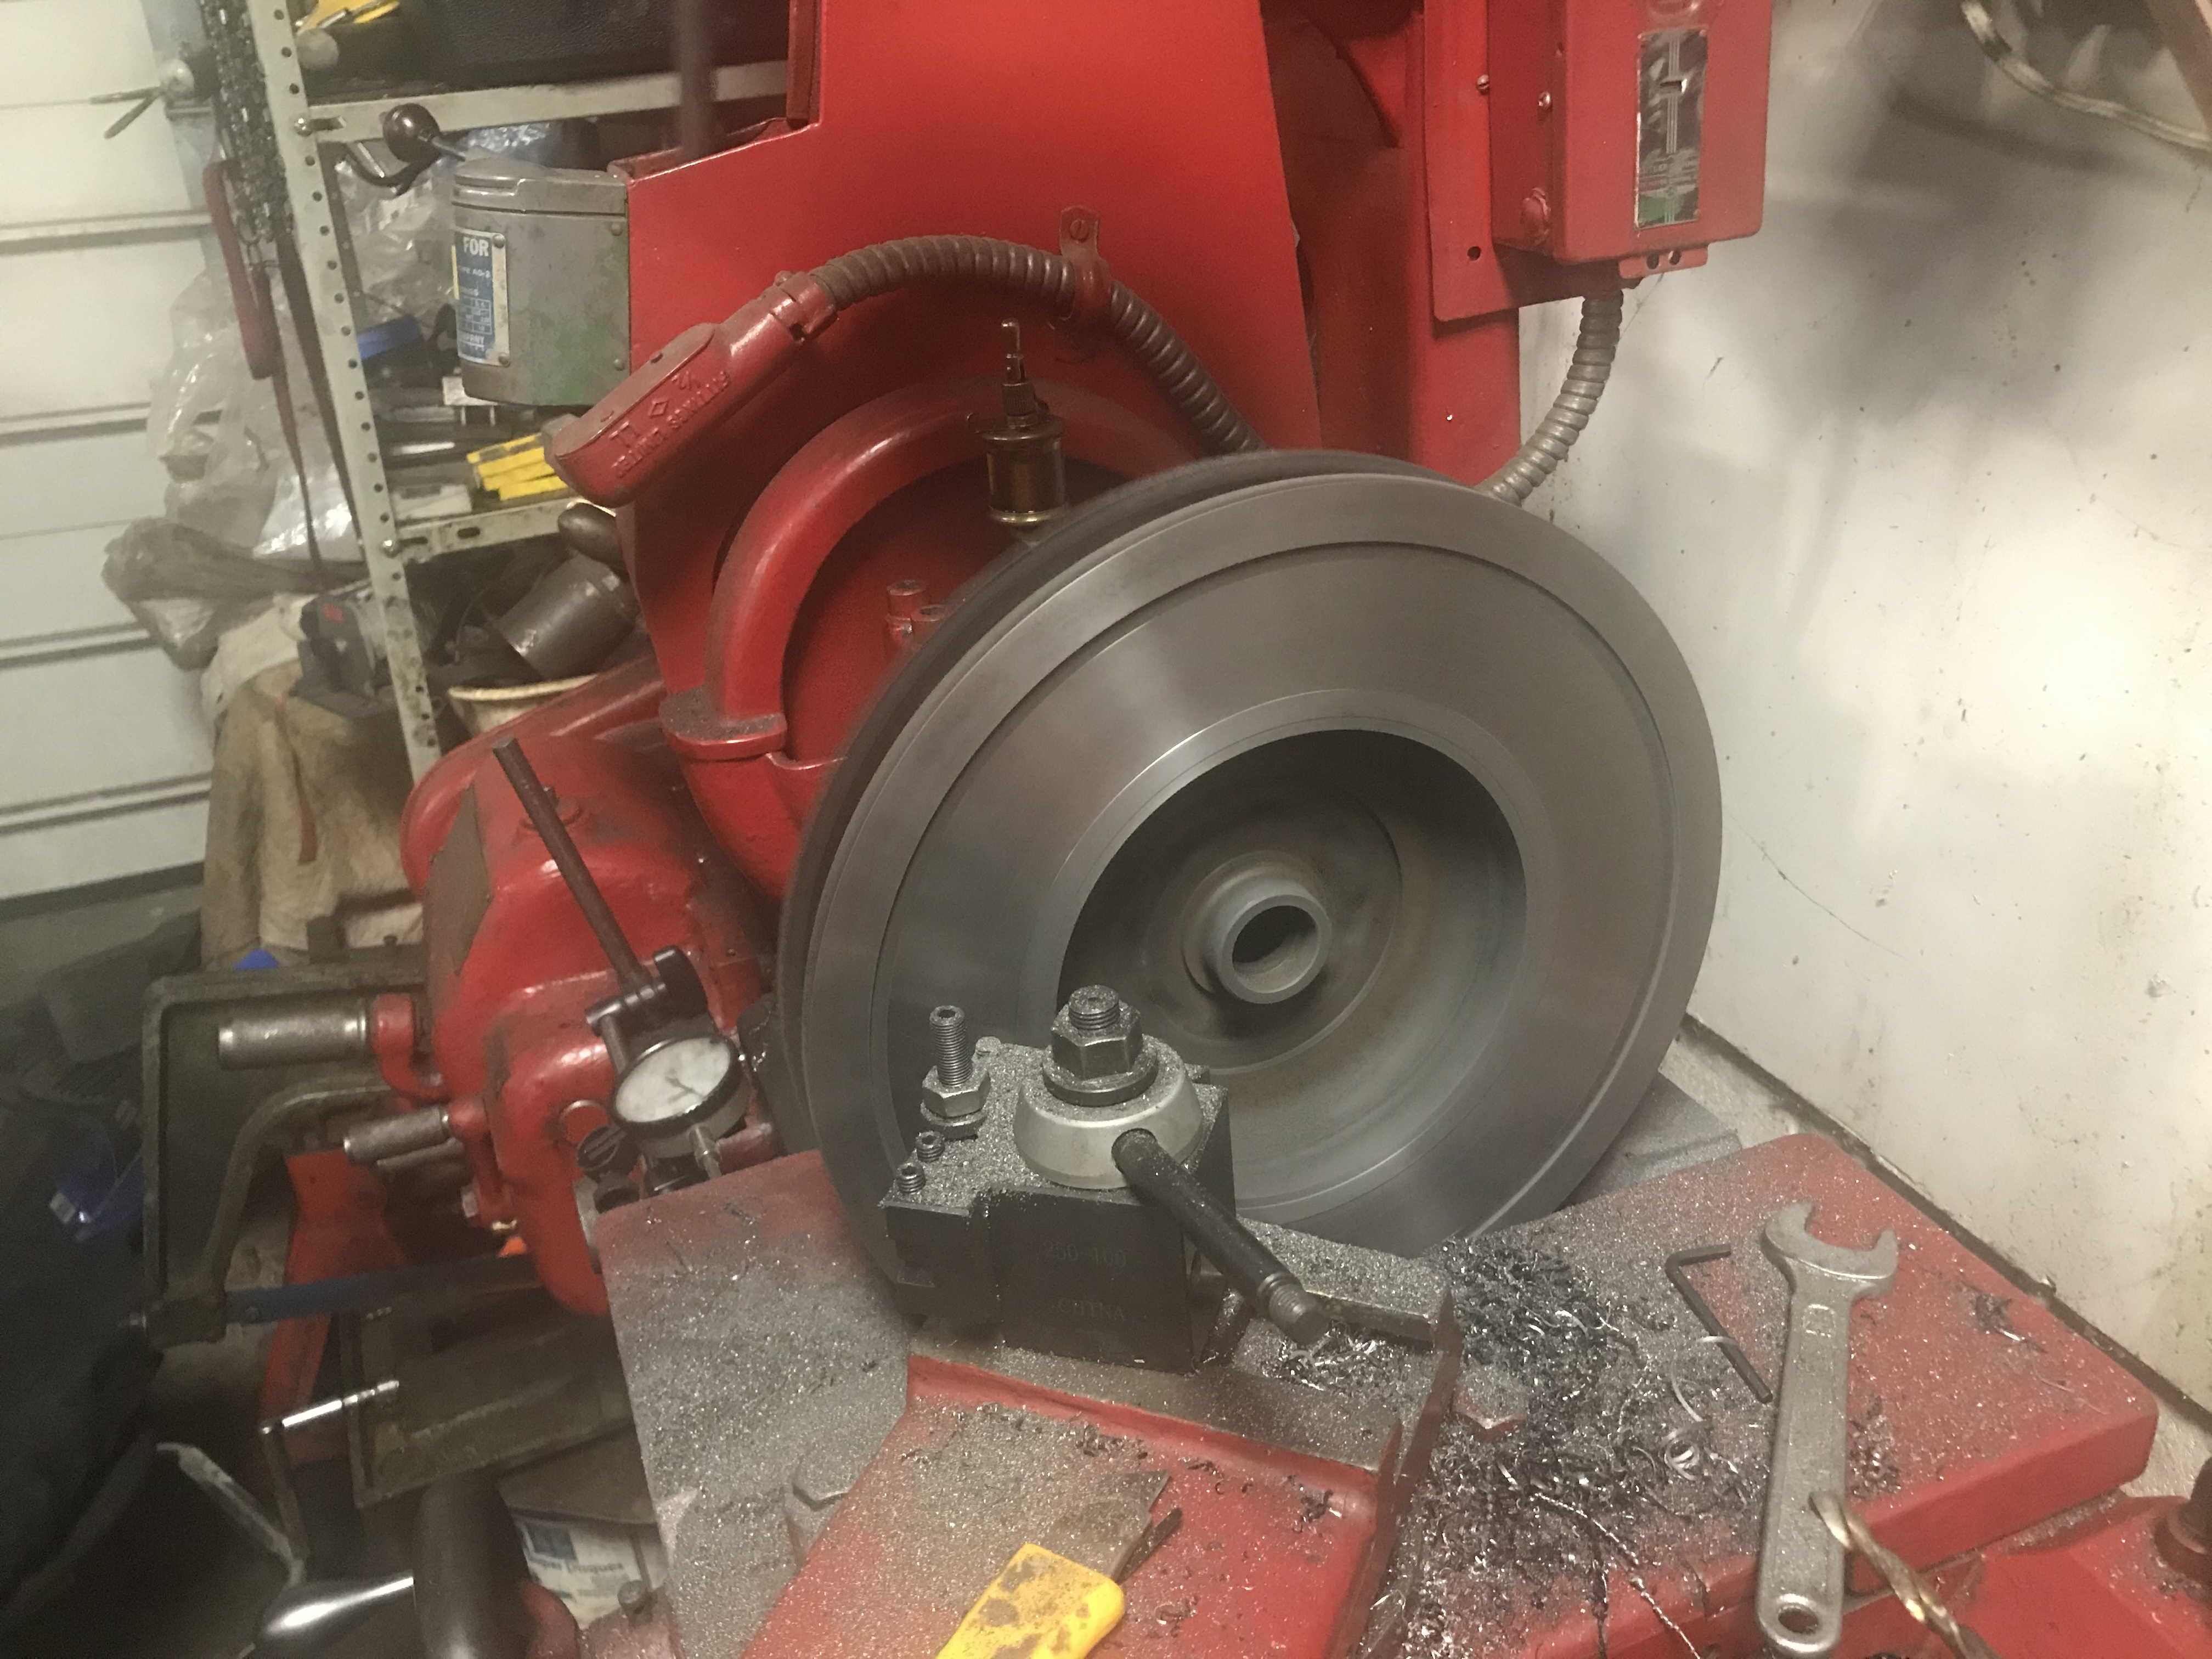 Machining the flywheel